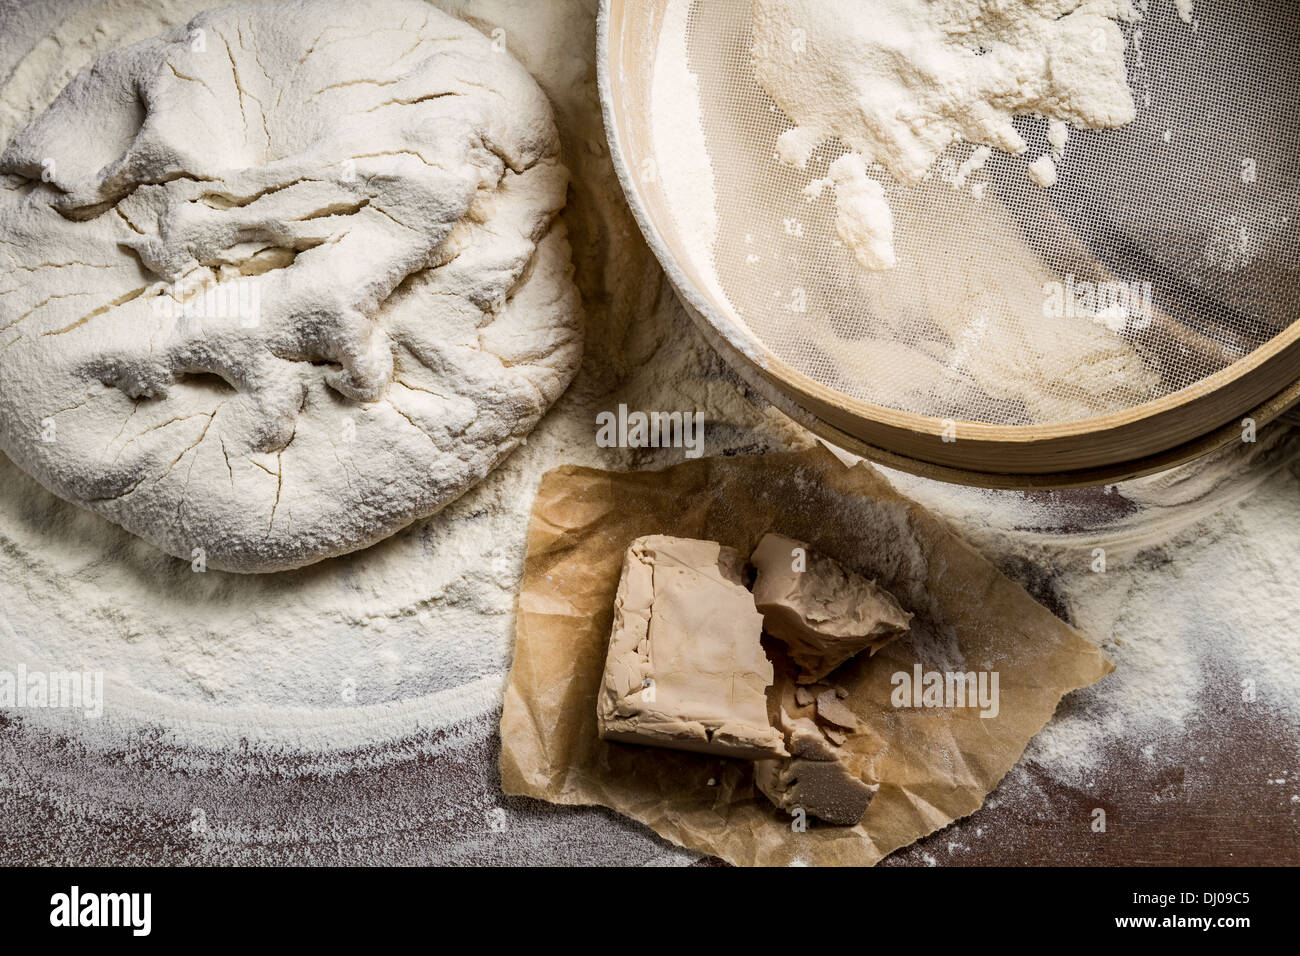 Homemade pizza dough made from yeast and flour - Stock Image